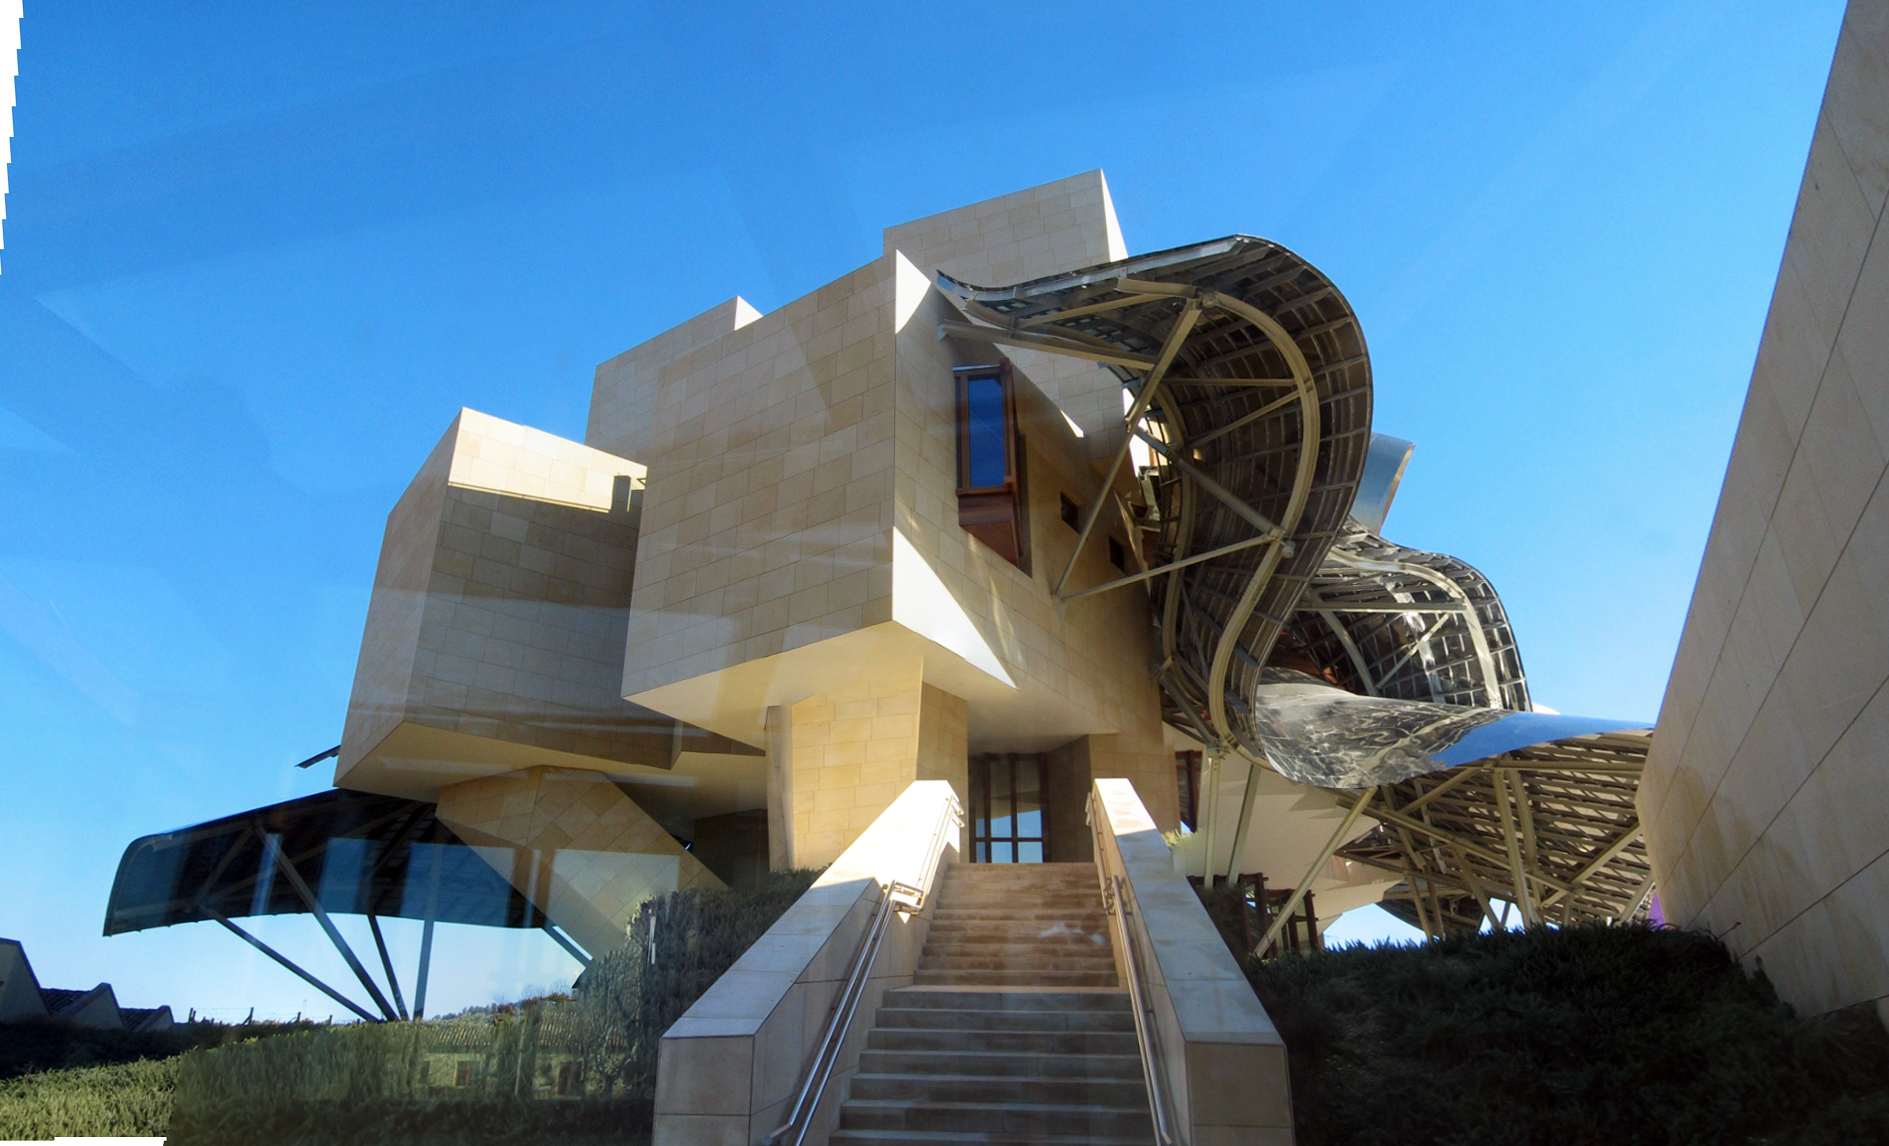 marques de riscal - frank gehry